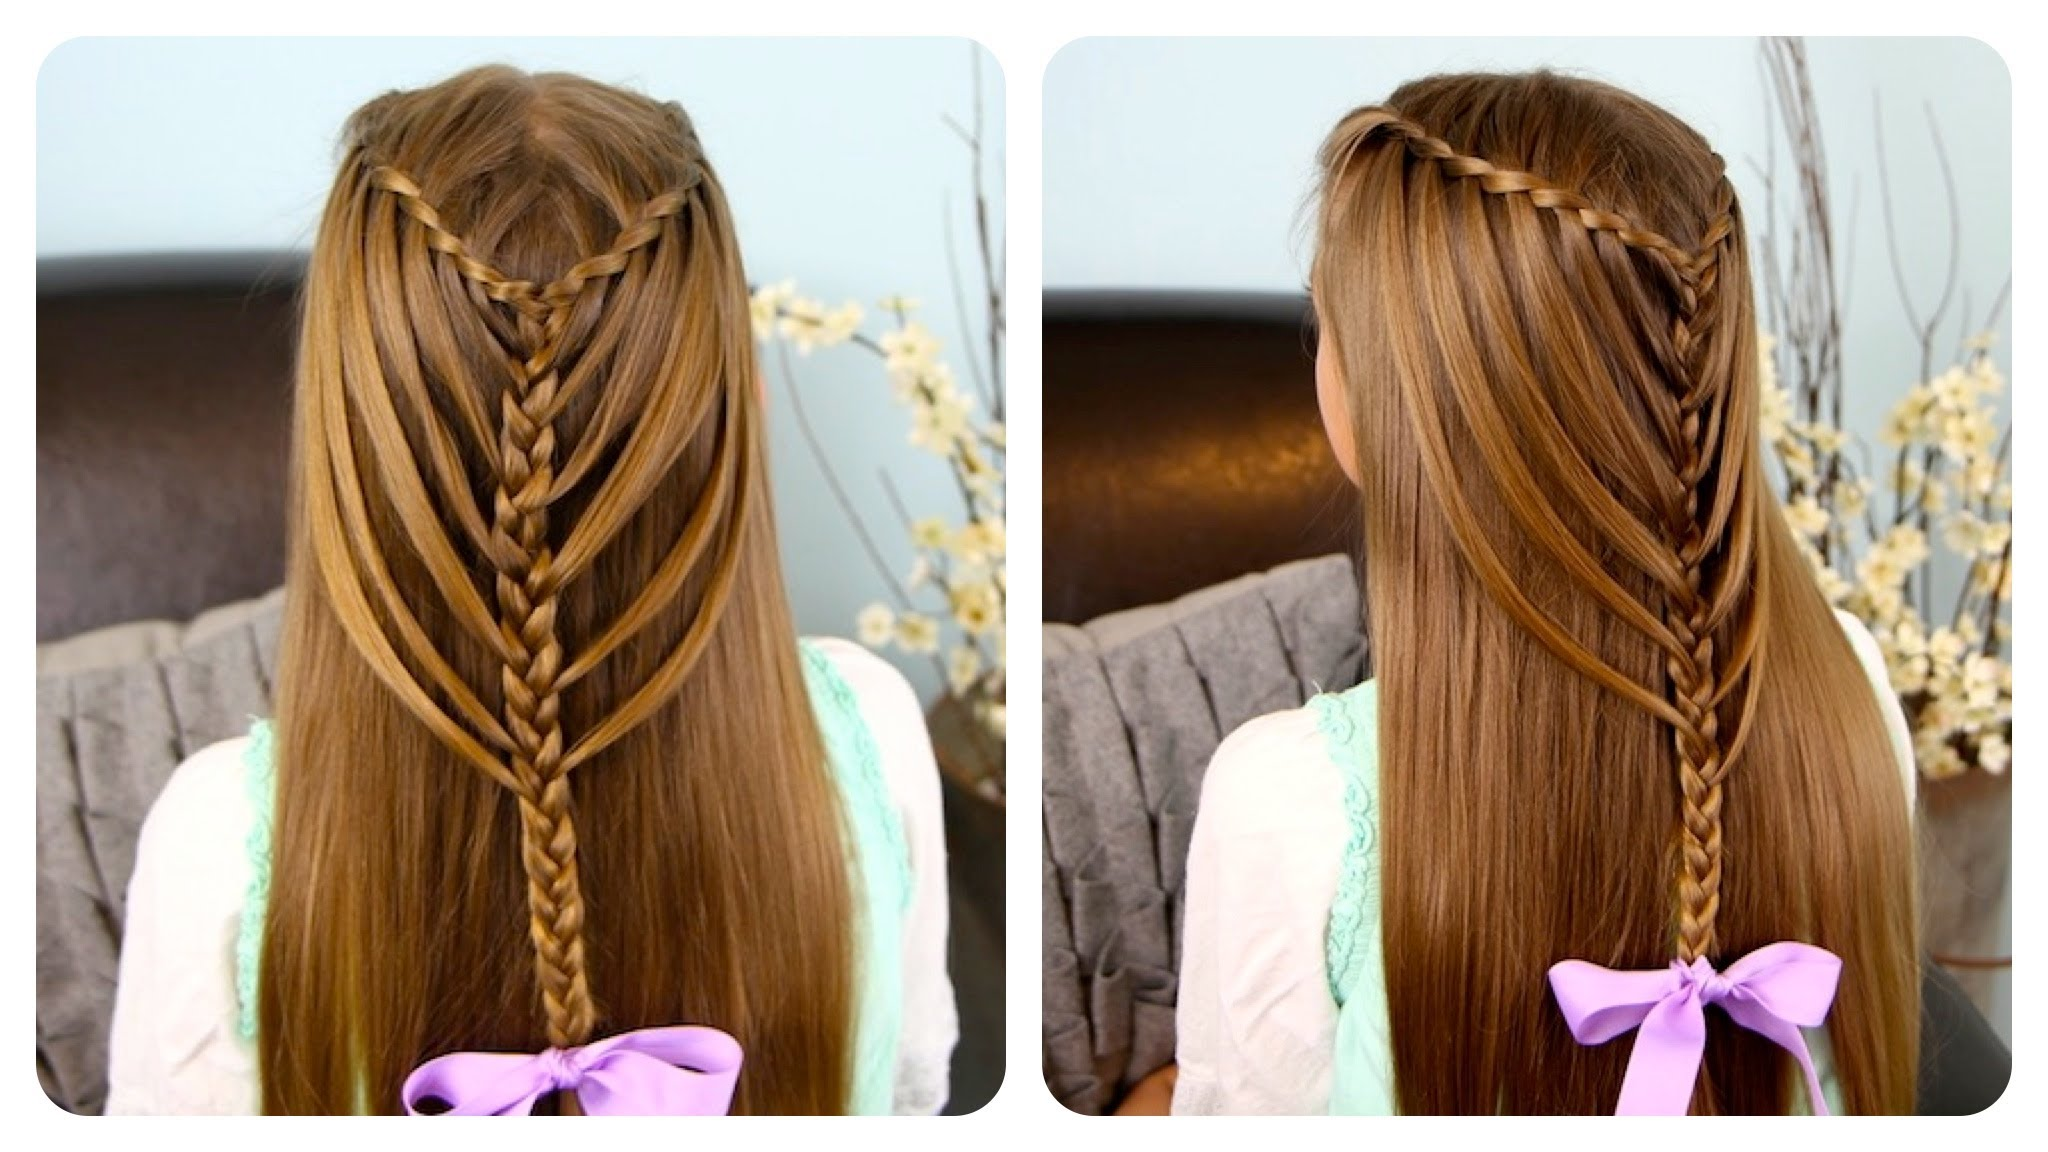 How To Do Waterfall Twists Into Mermaid Braid Hairstyles Step By DIY Tutorial Instructions